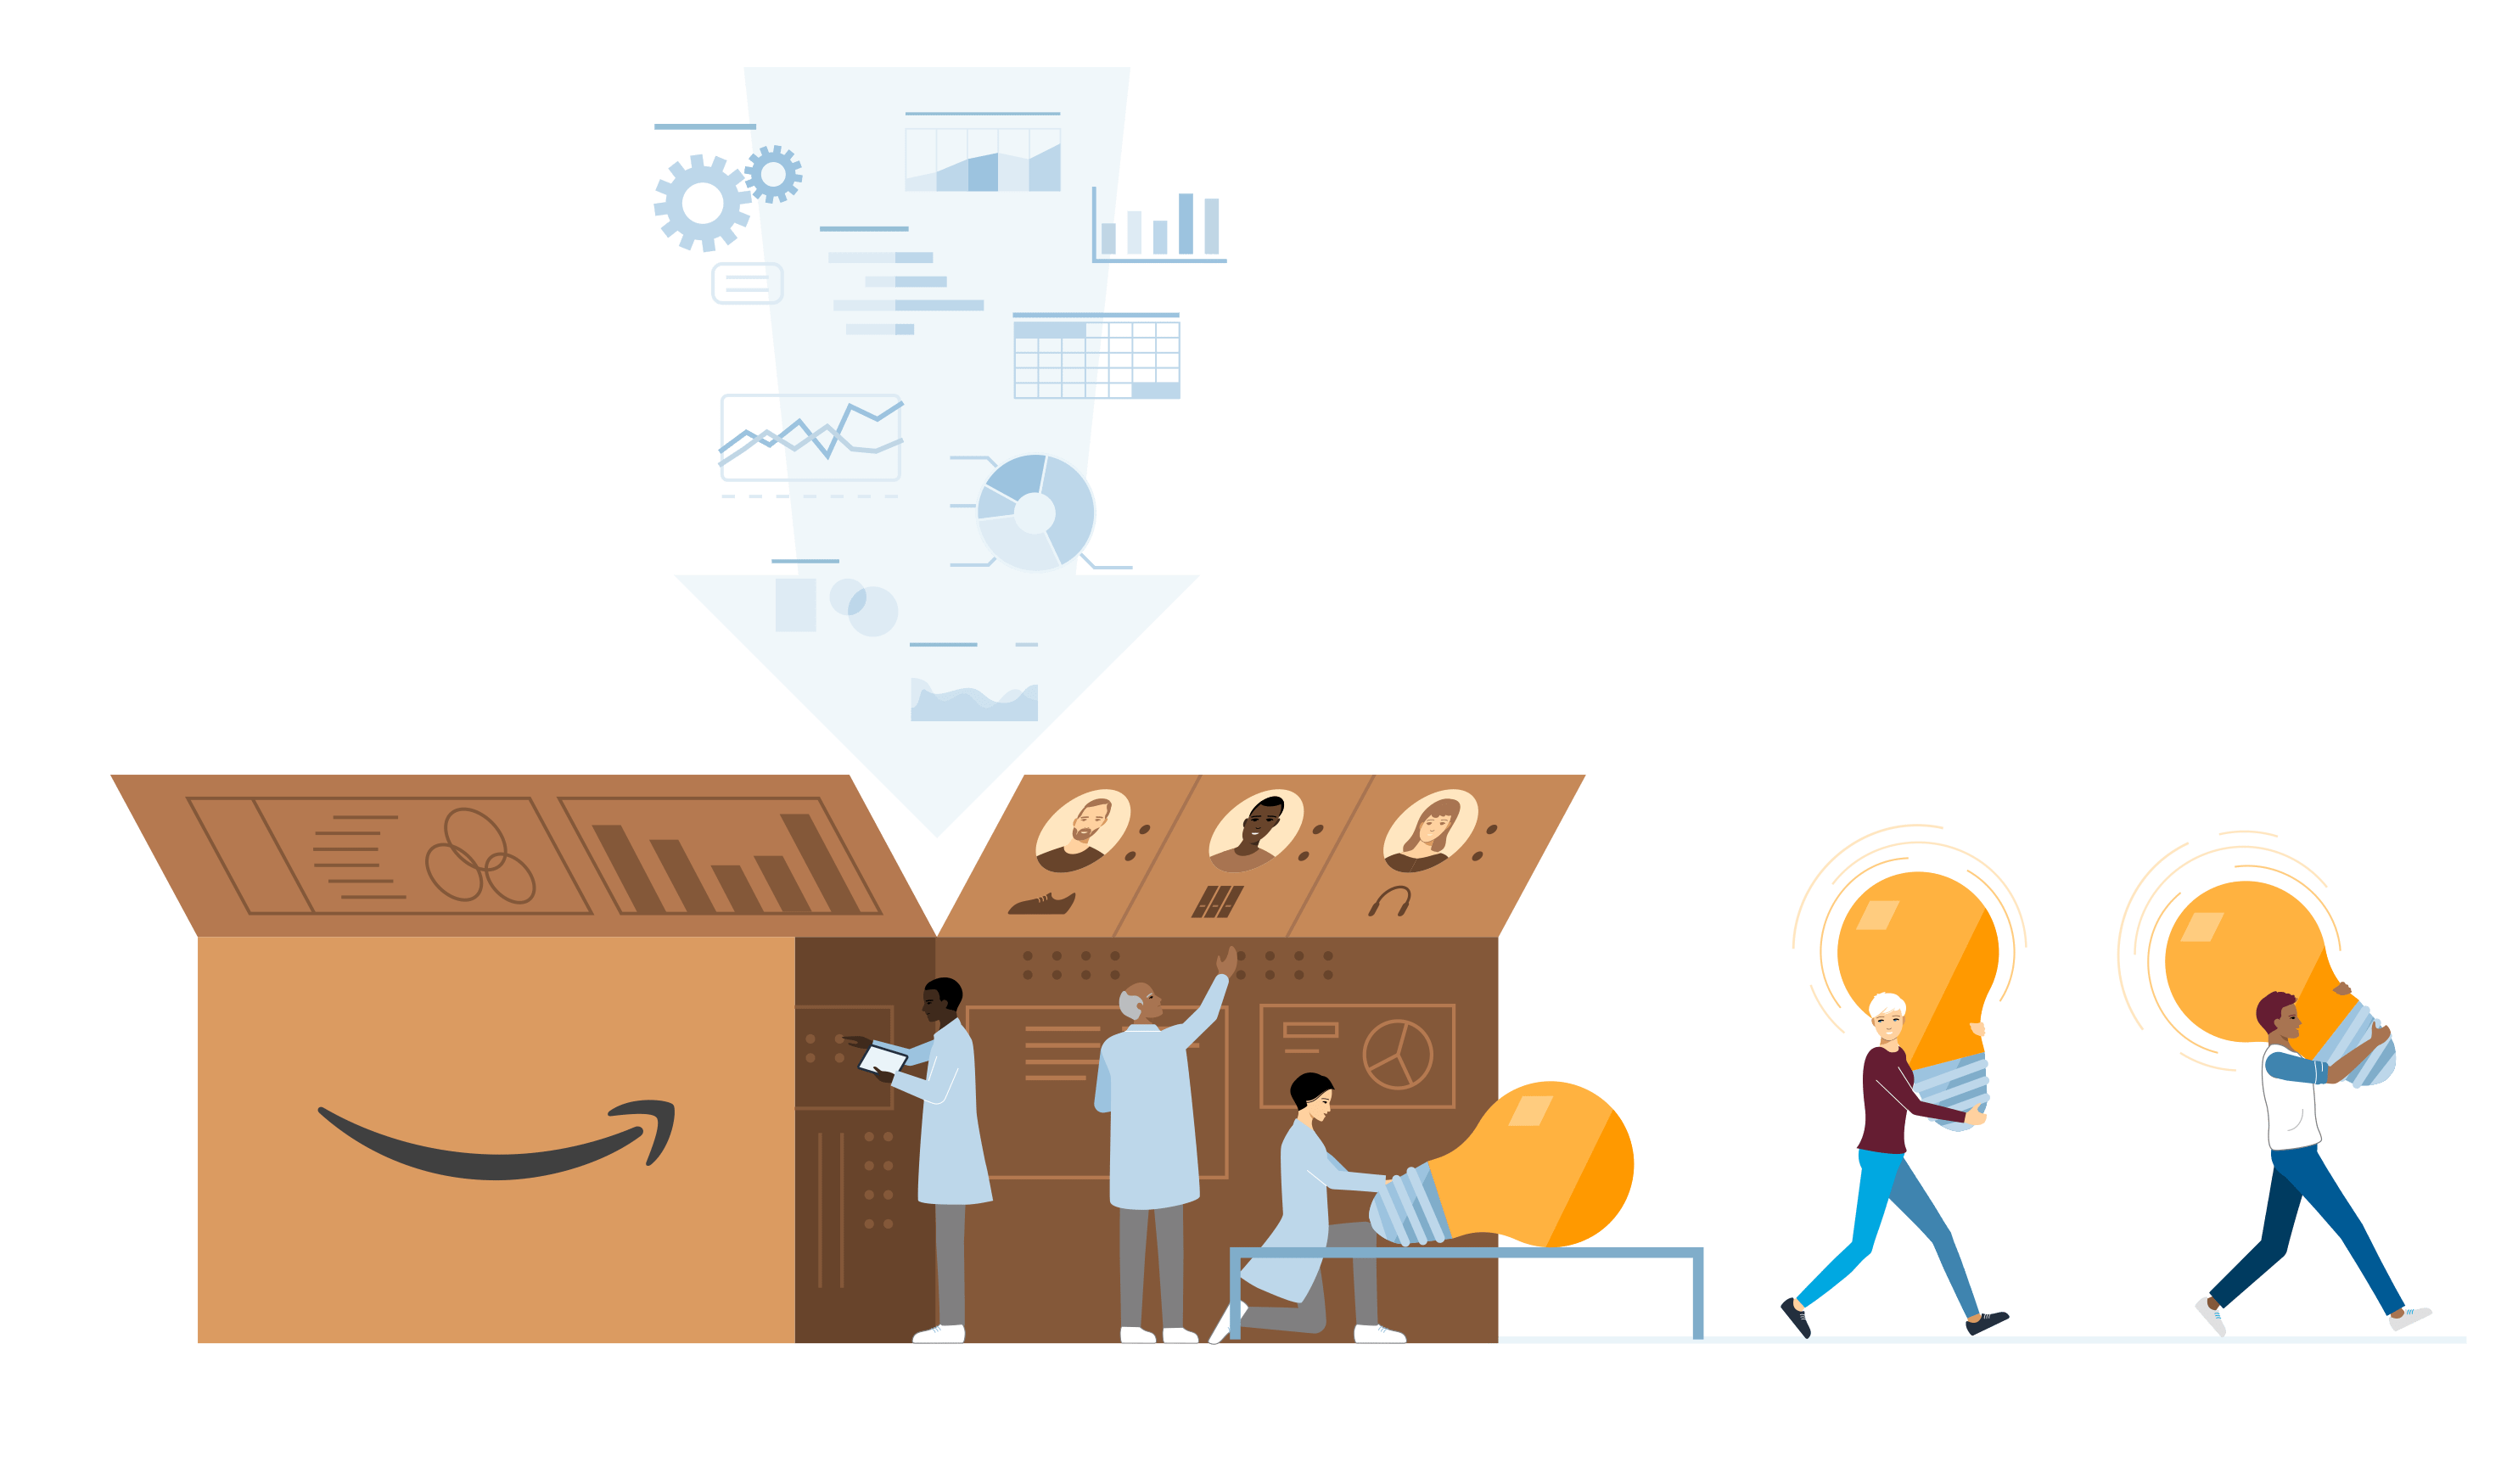 Illustration of workers carrying light bulbs out of box